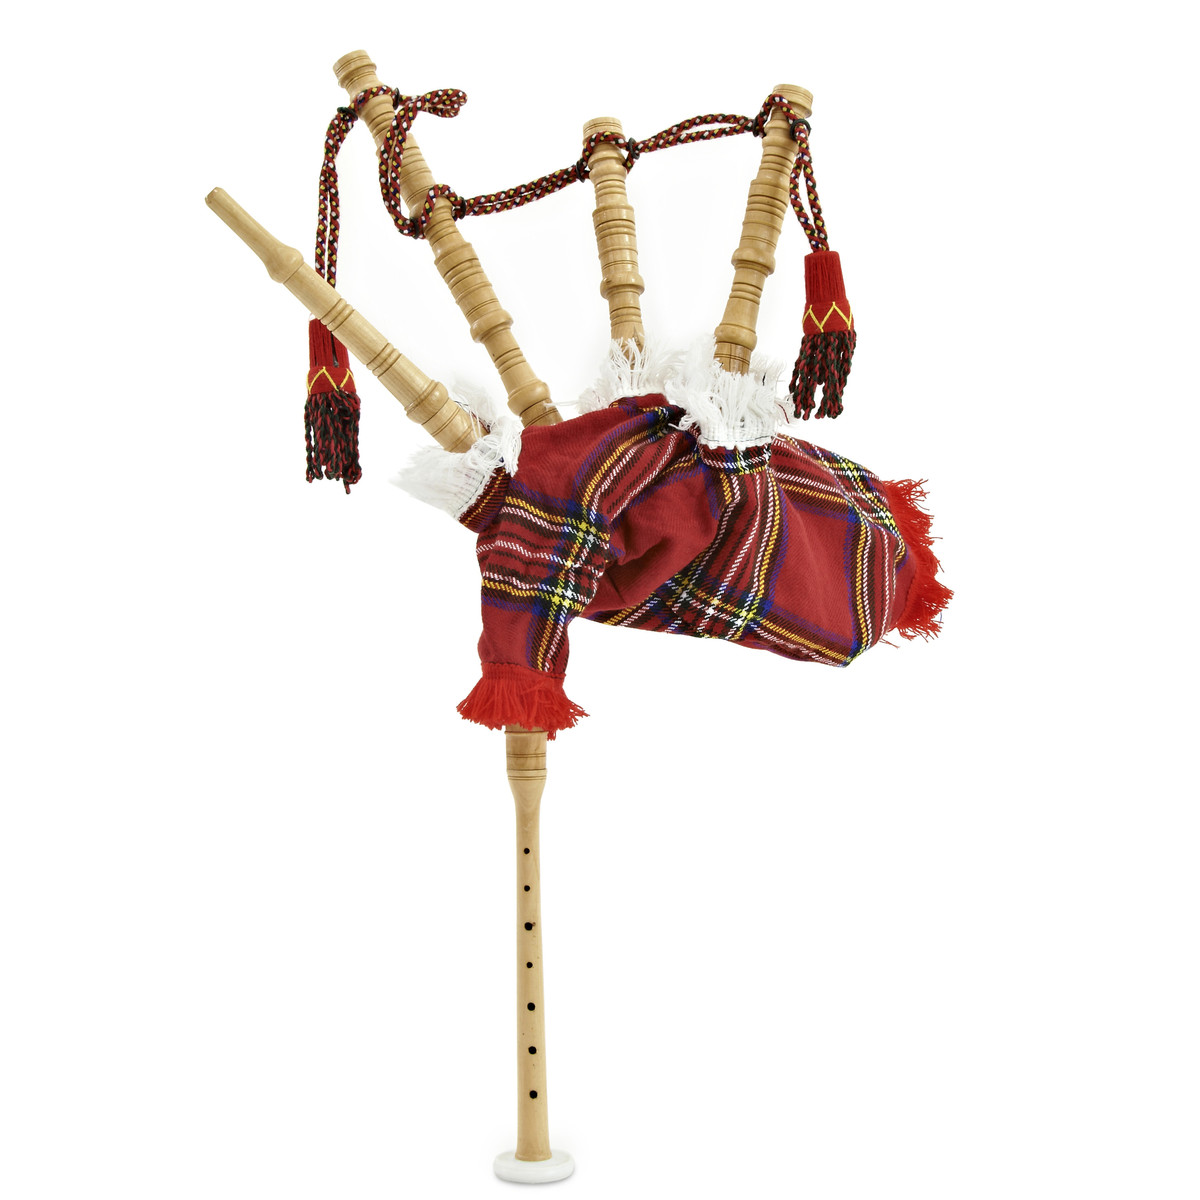 Image of Chanter Bagpipes by Gear4music Junior Royal Stewart